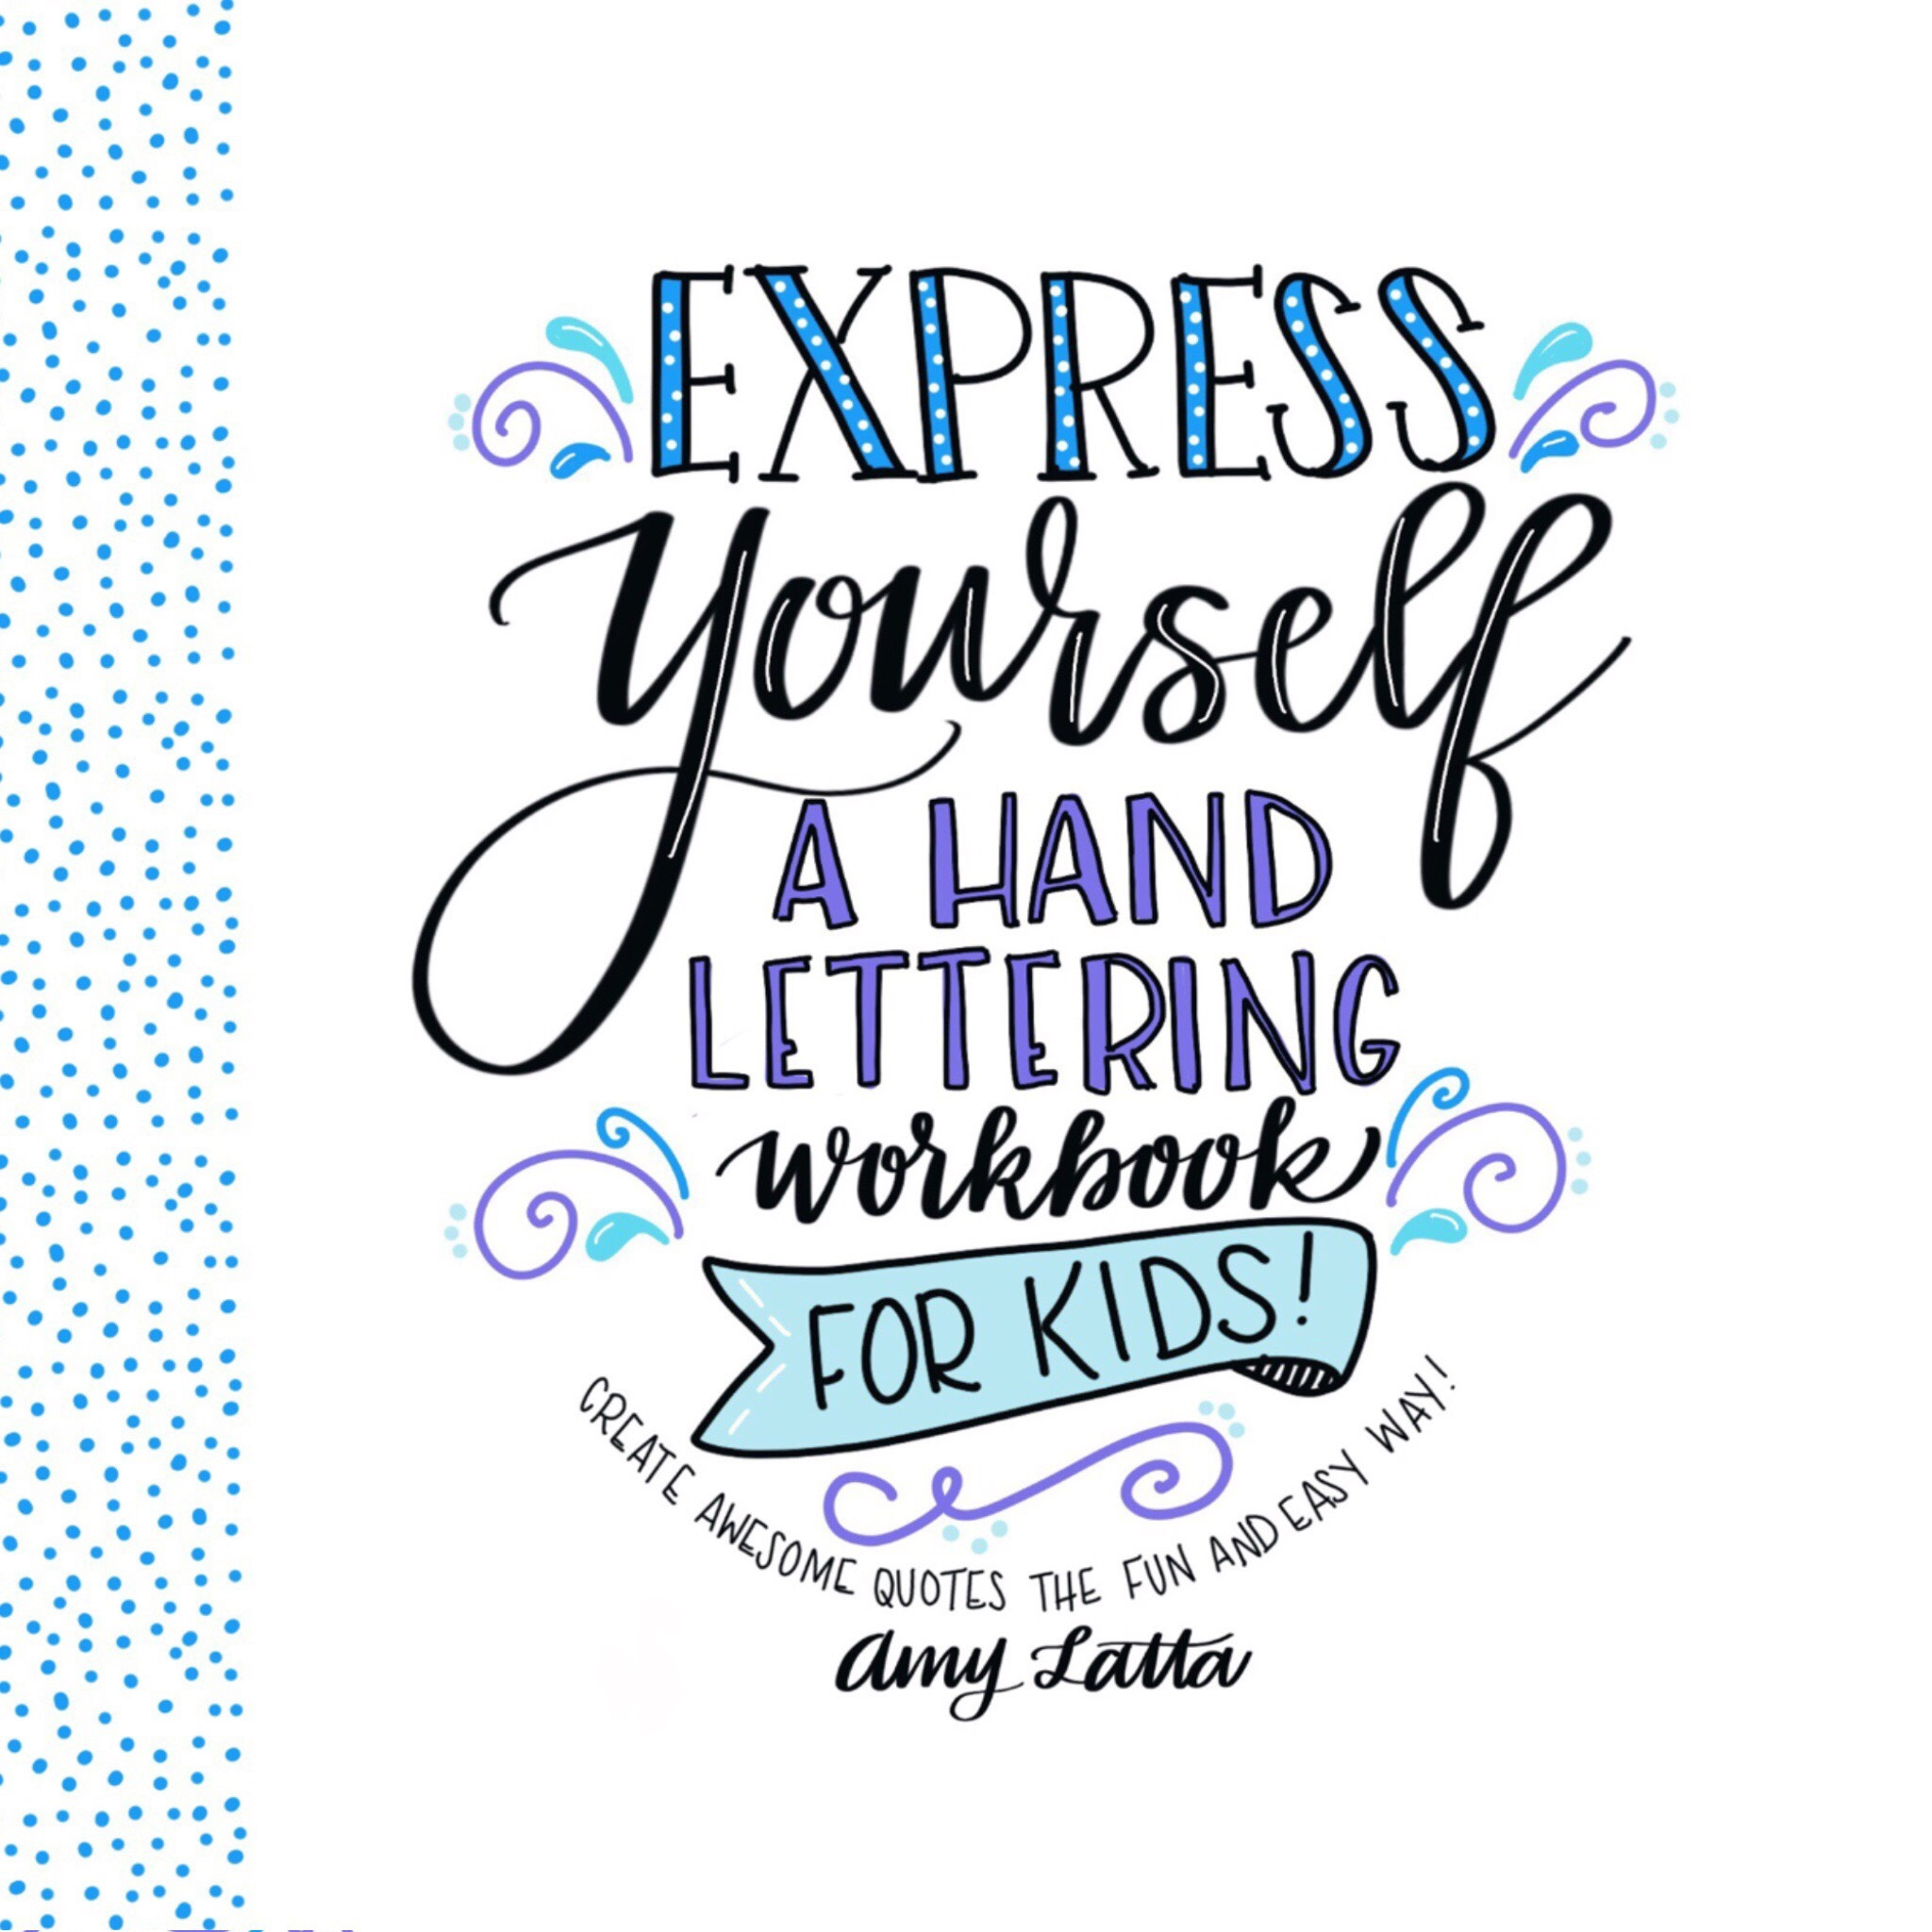 Express Yourself: A Hand Lettering Workbook for Kids : Create Awesome Quotes the Fun & Easy Way!